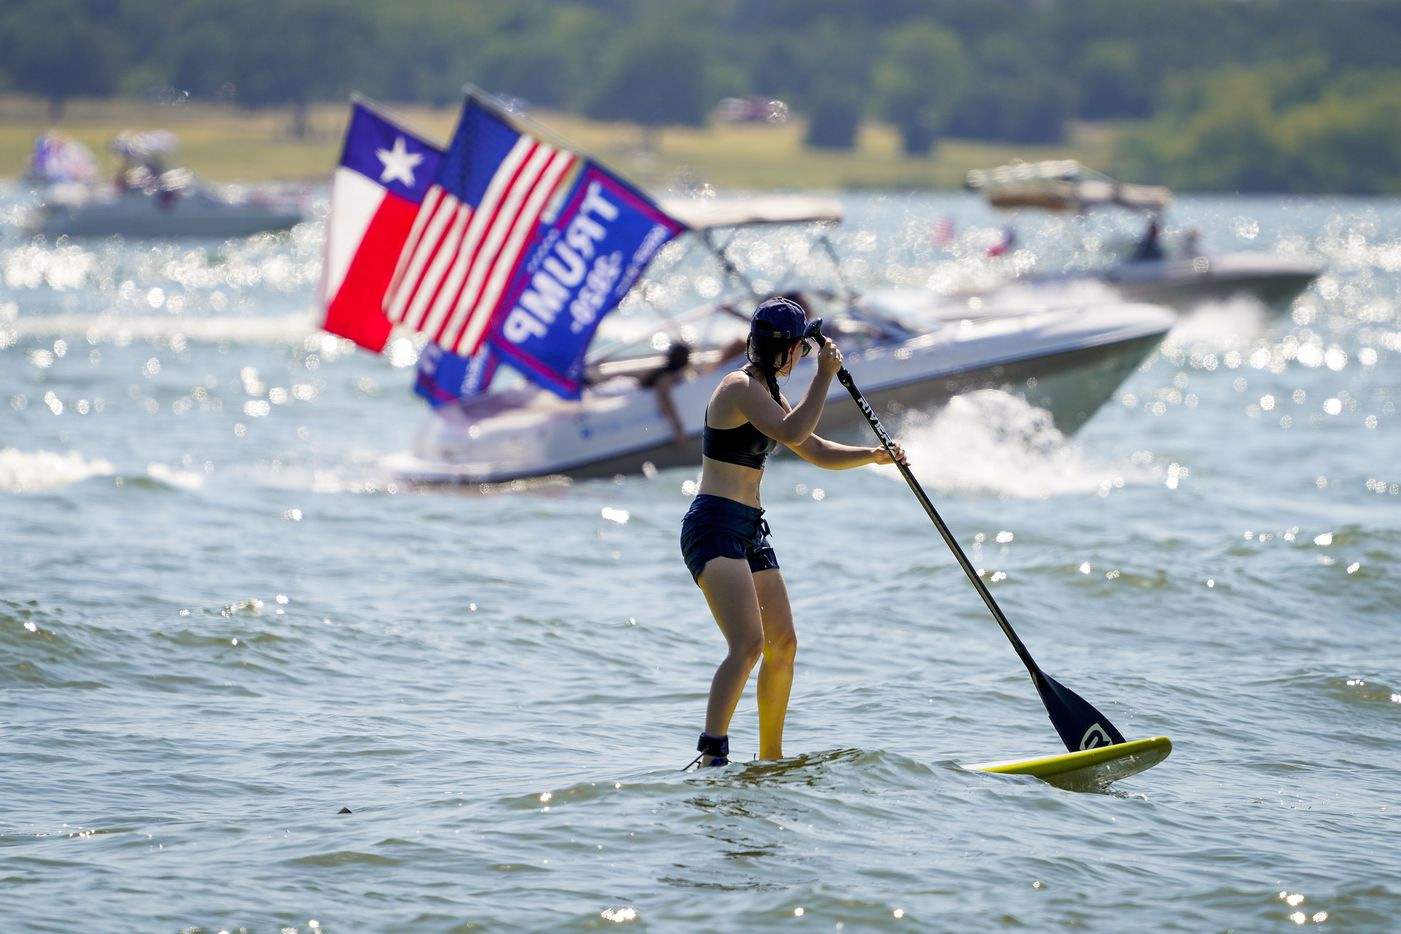 Boaters in support of President Donald Trump pass a woman on a paddle board as they parade around Grapevine Lake near Murrell Park on Saturday, Aug. 15, 2020.